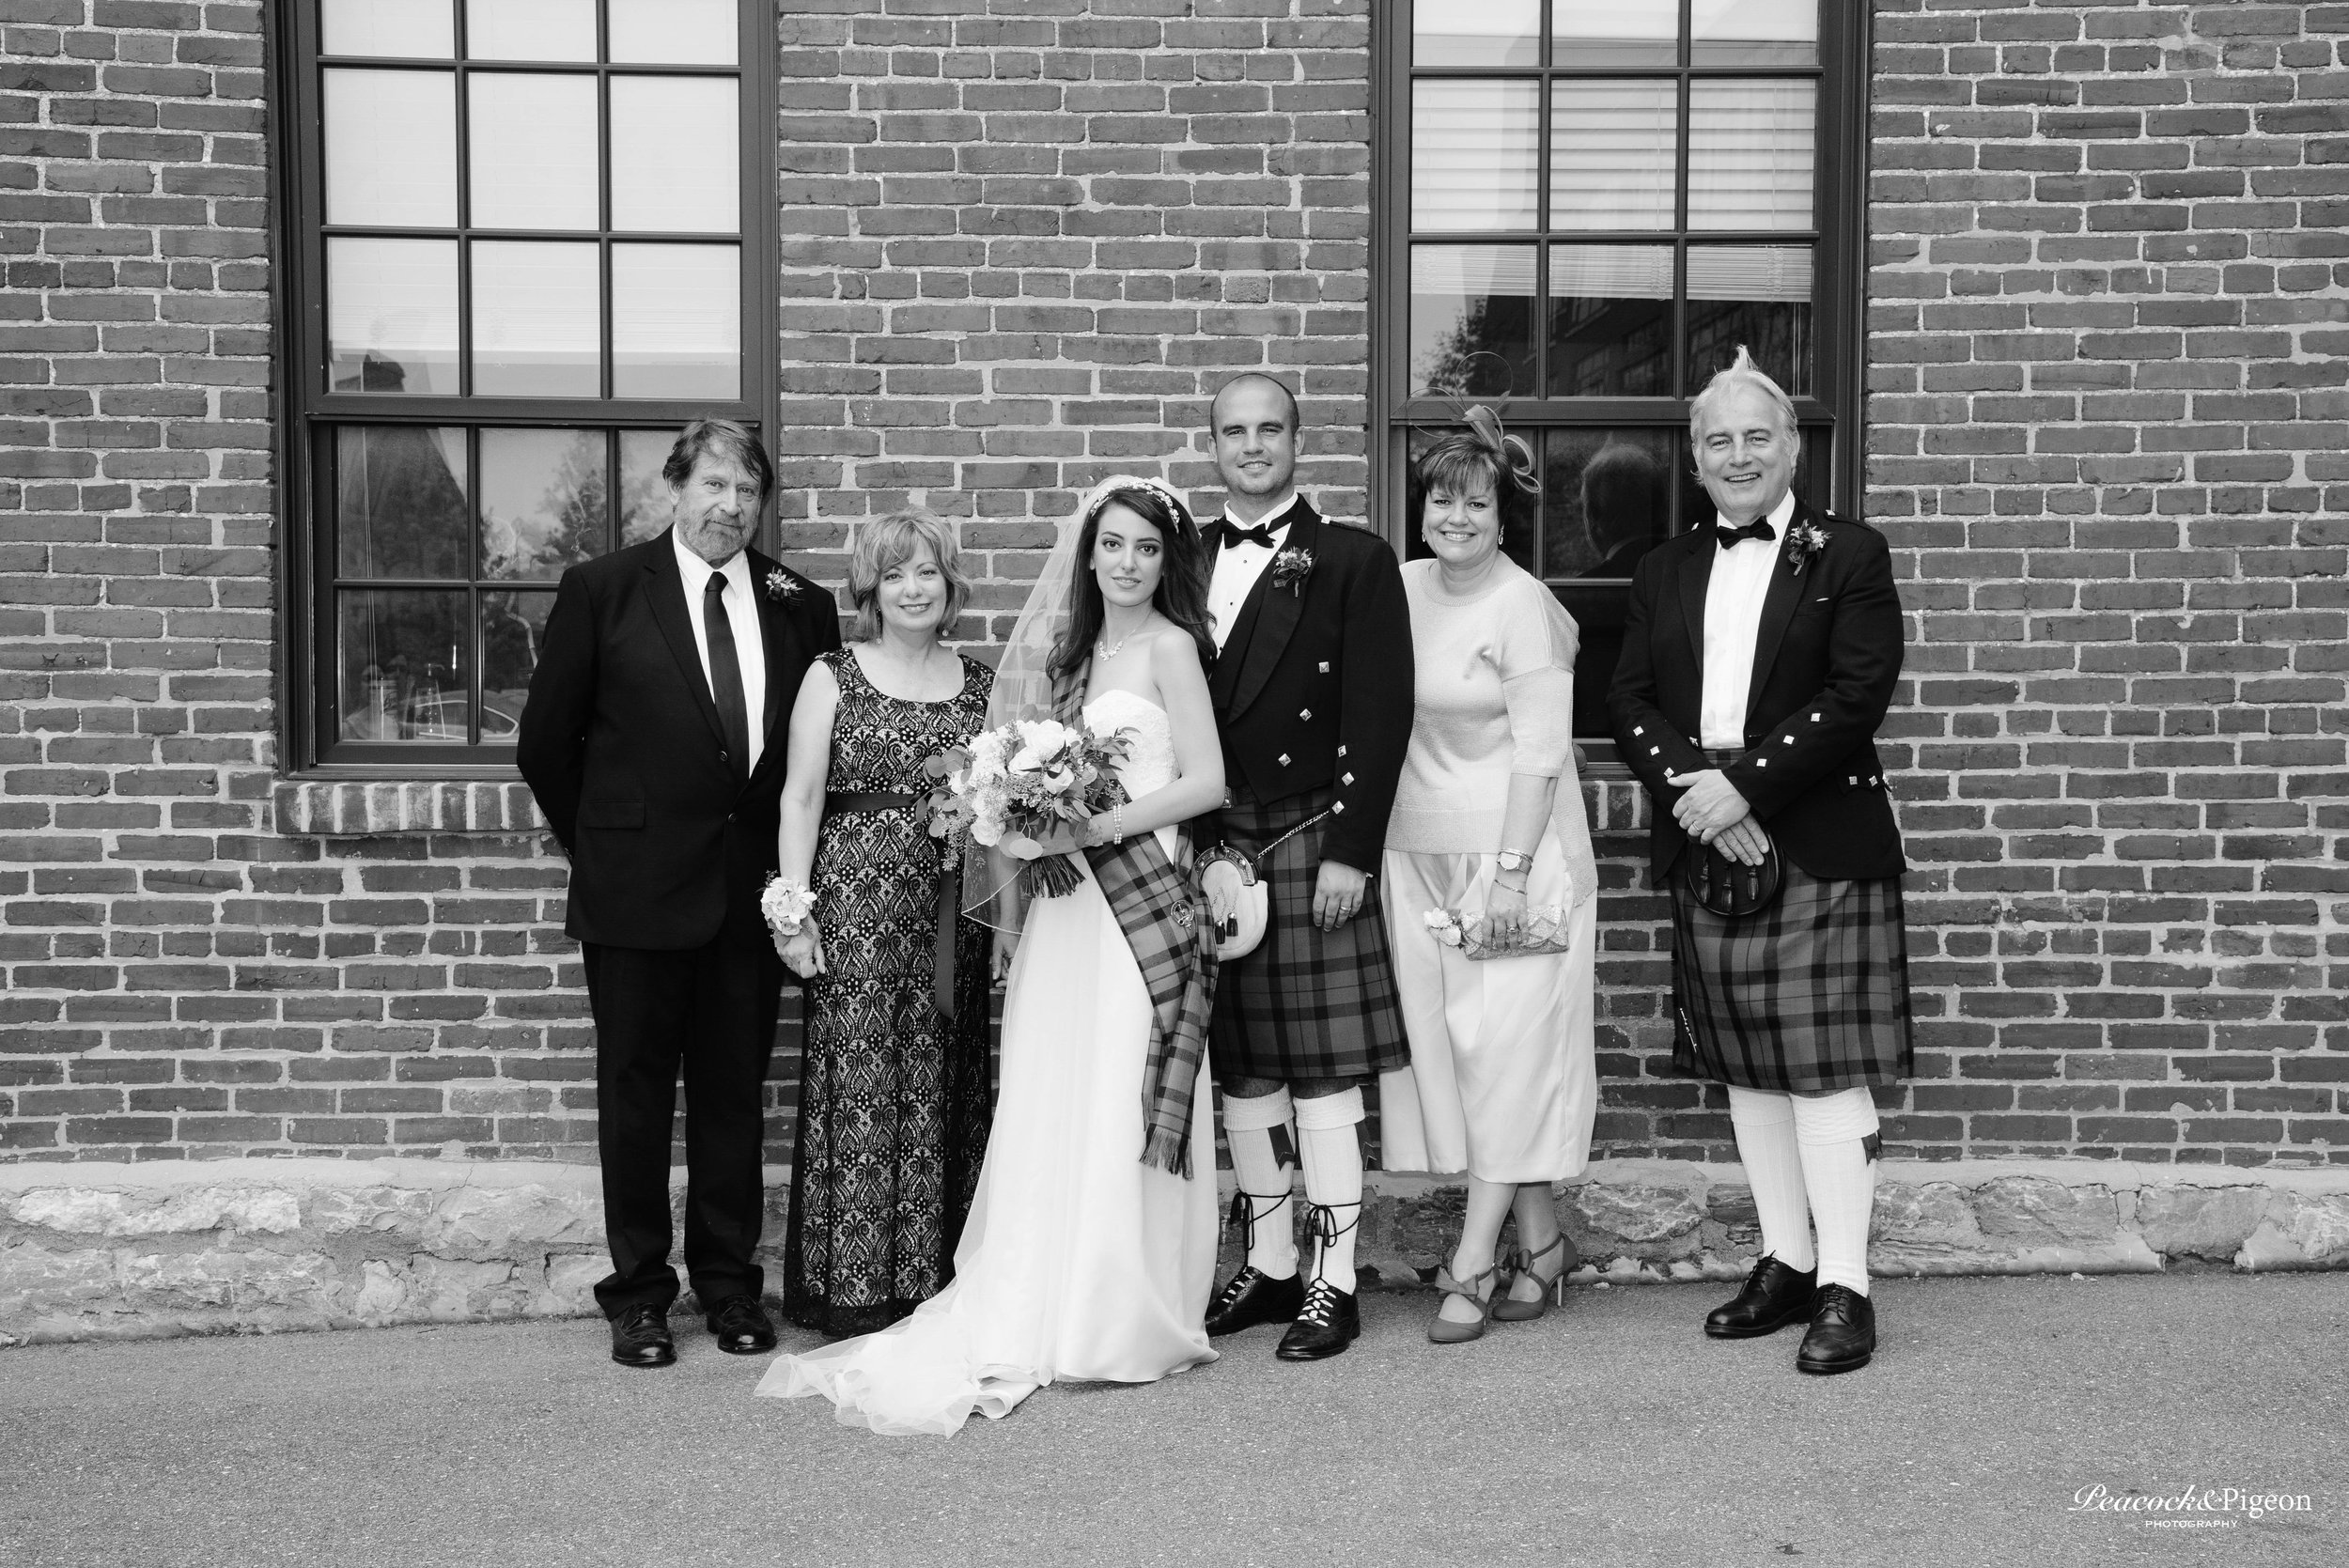 Callum_and_Sara's_Wedding_at_the_Cork_Factory_Hotel_in_Lancaster-Part_Five_The_Bridal_Party_Black_and_White_Watermarked-51.jpg